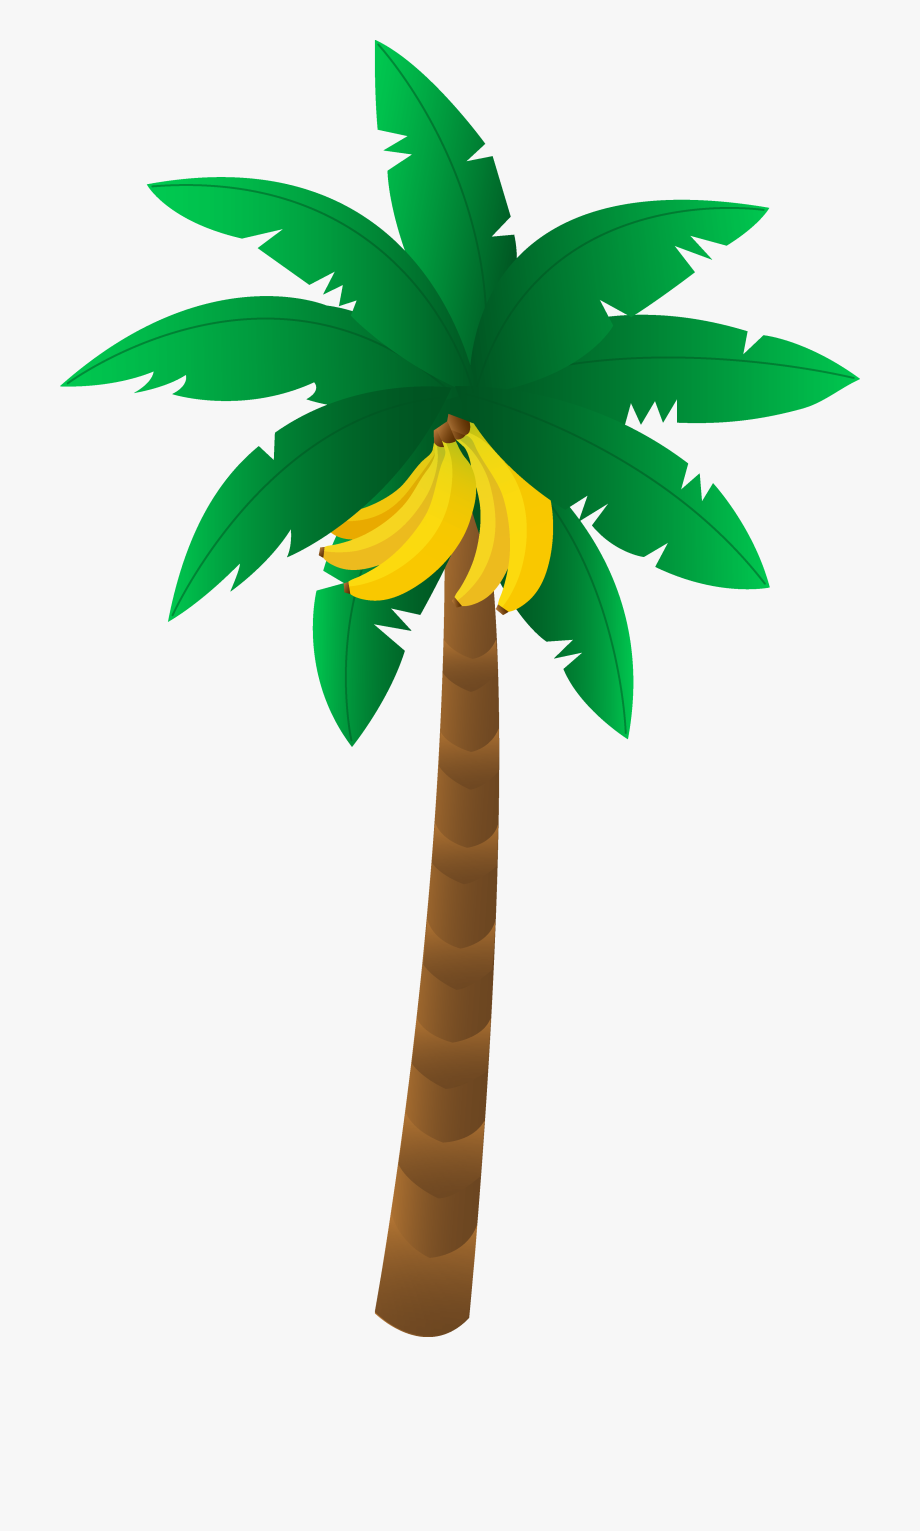 Banana trees pictures clipart png royalty free library Banana Tree Clipart #17403 - Free Cliparts on ClipartWiki png royalty free library